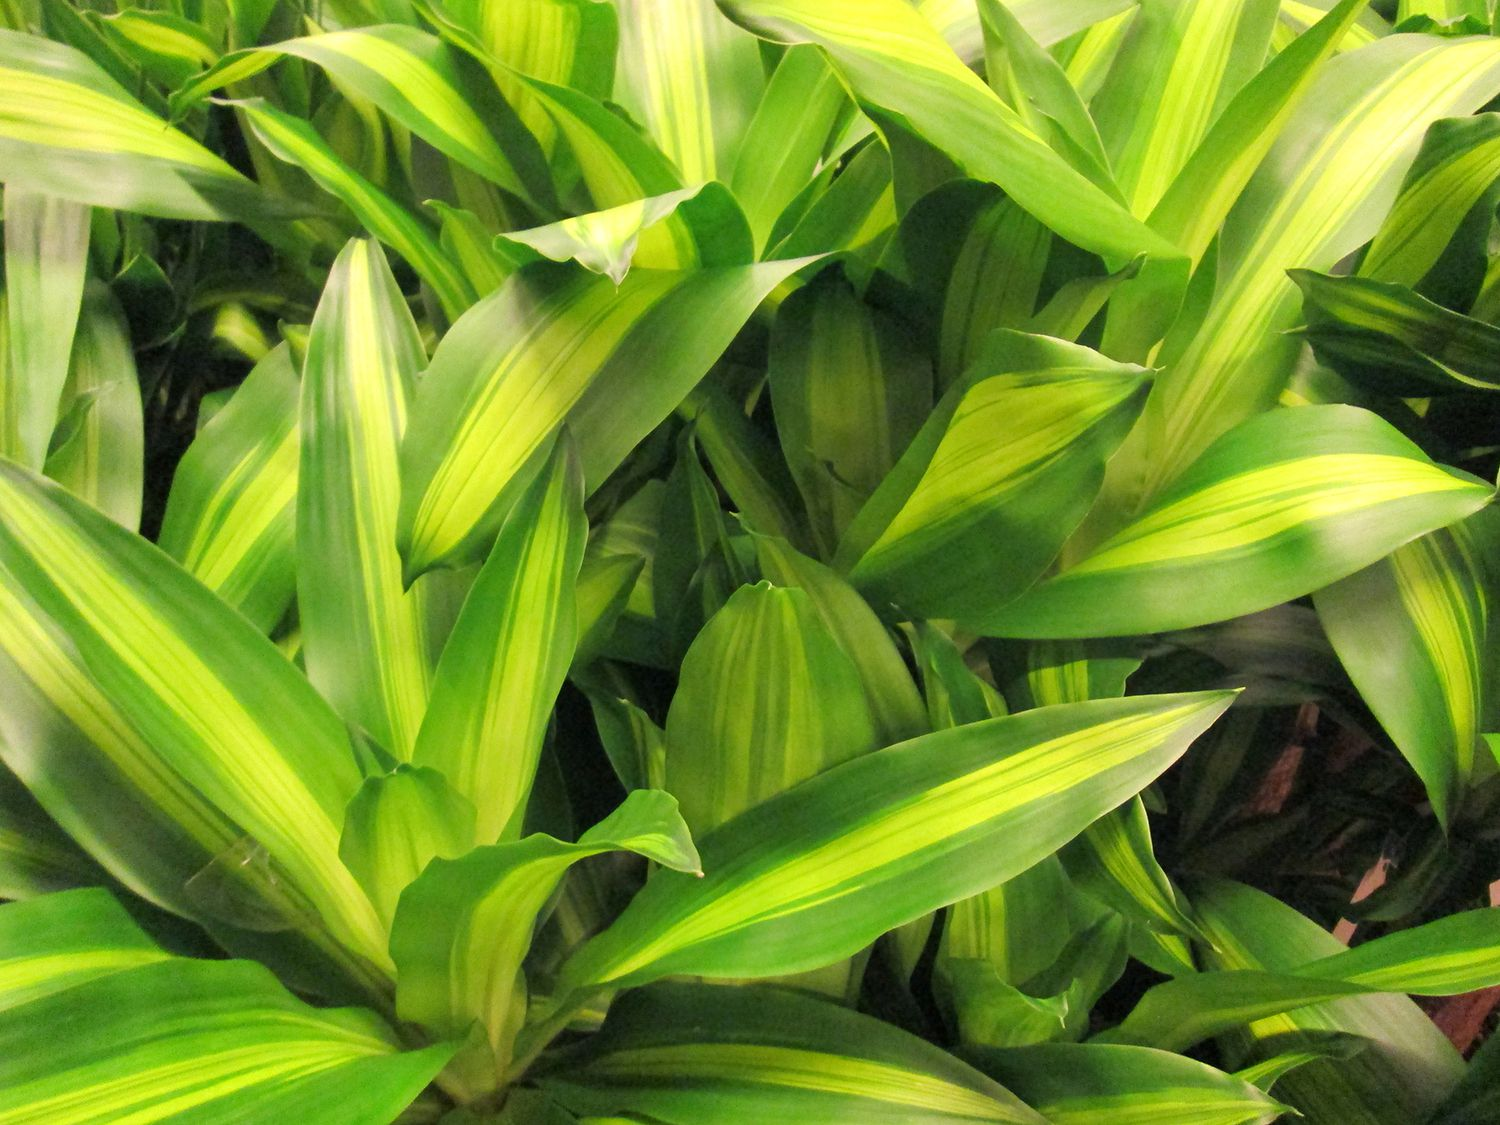 How To Grow And Care For Corn Plants (Dracaena Fragrans